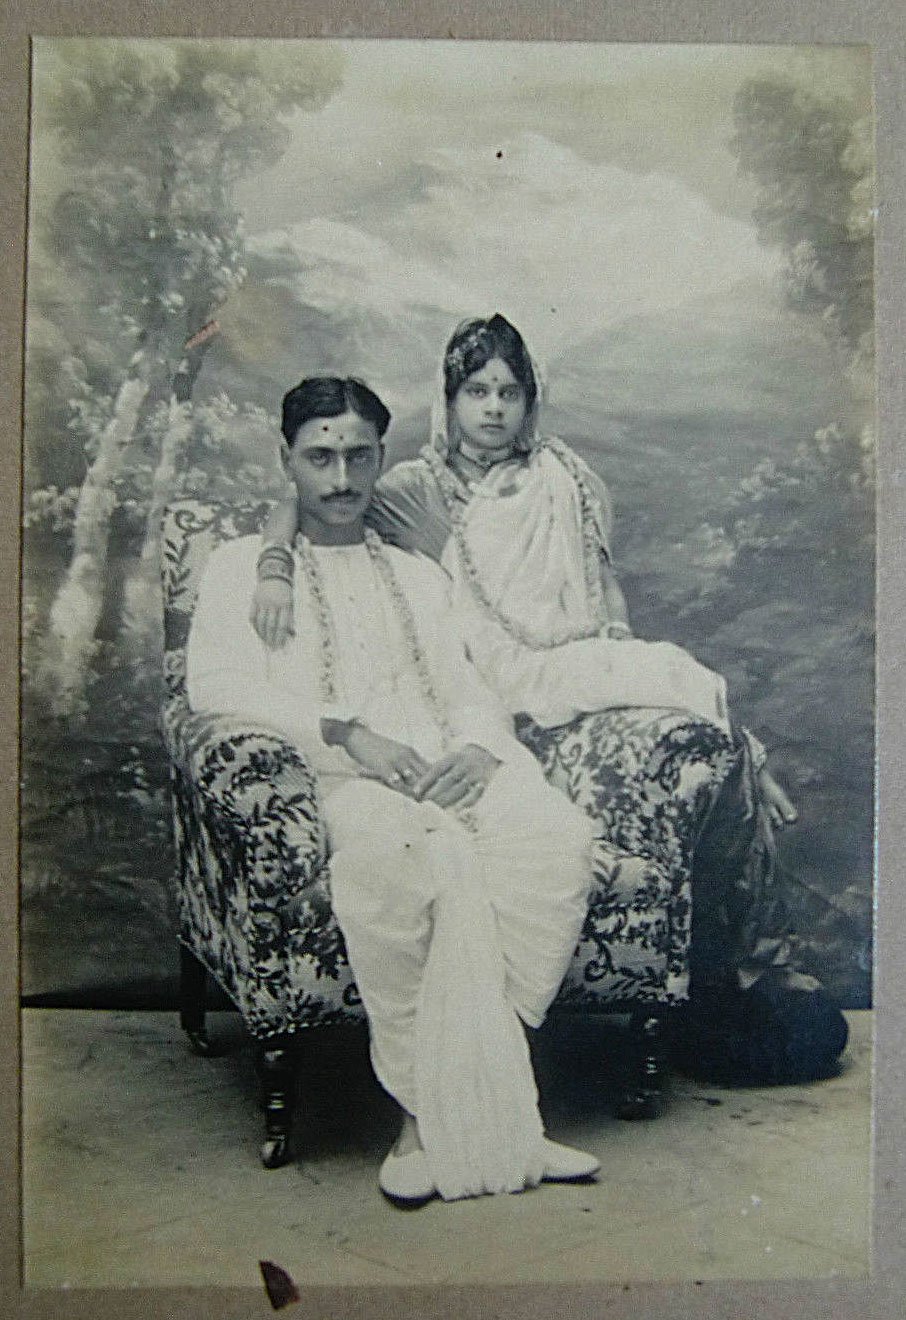 Studio Photograph of a Newly Married Couple